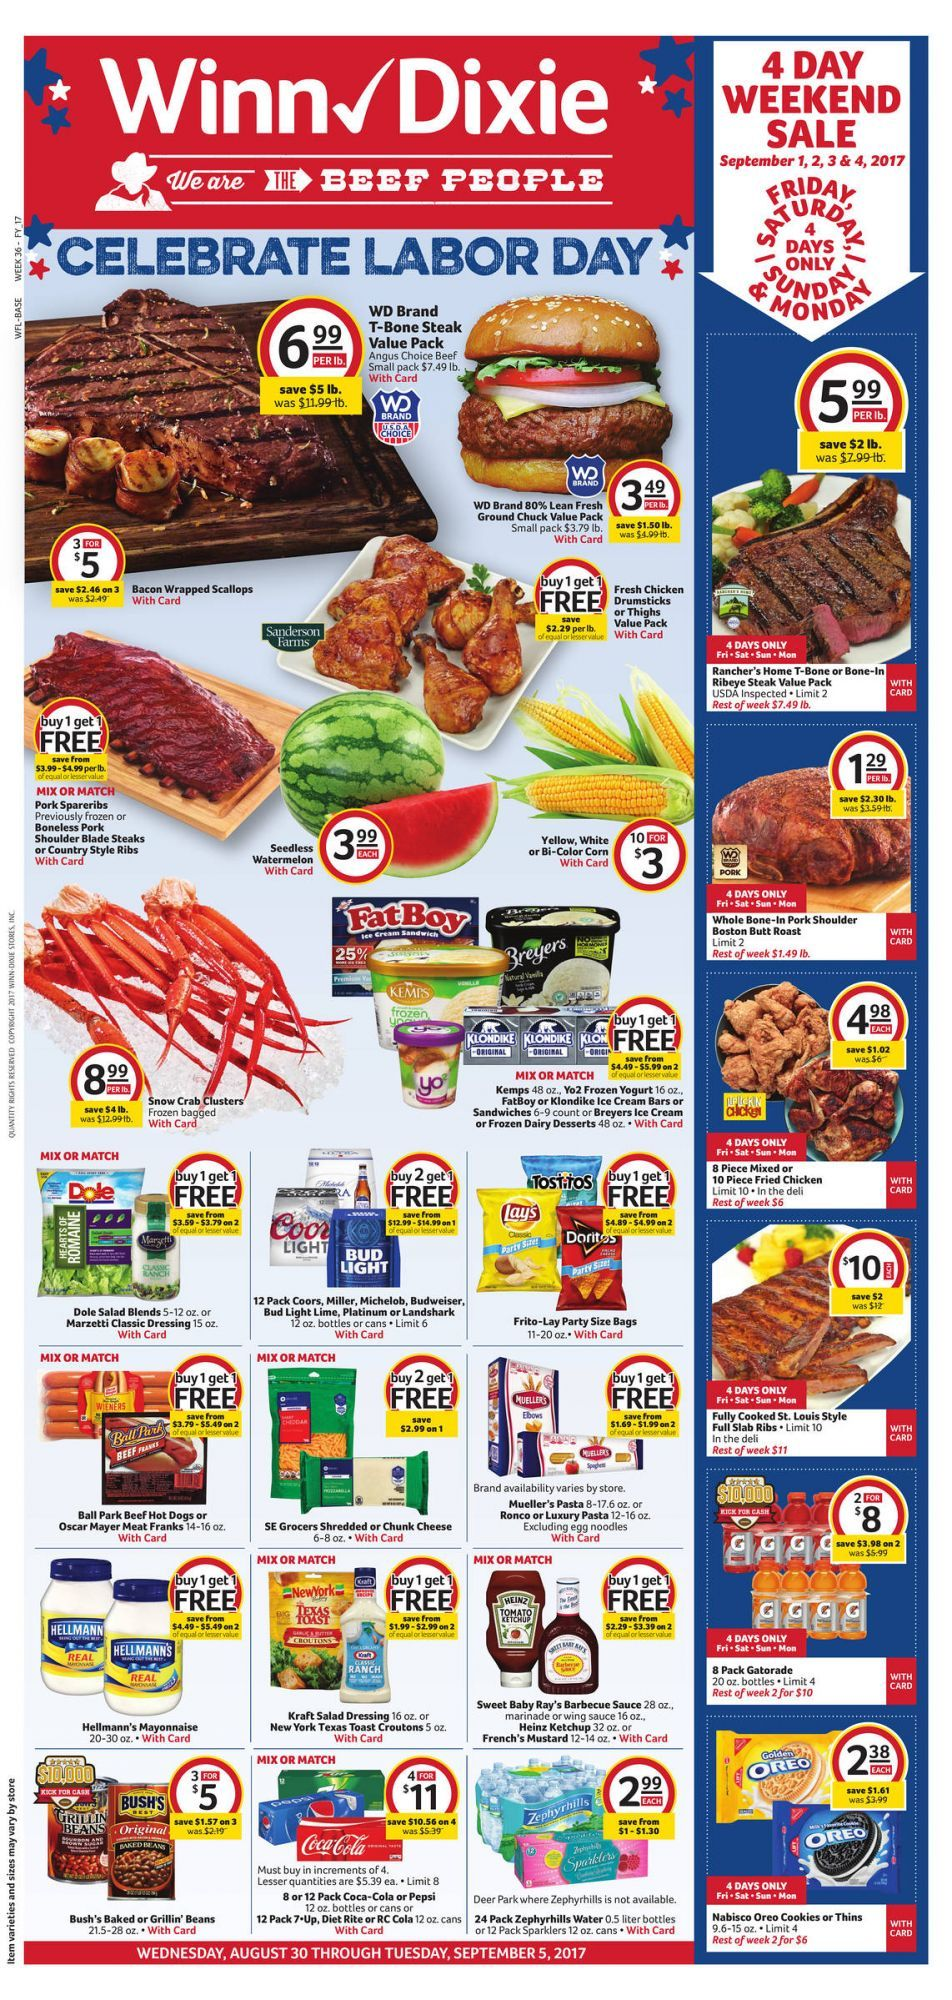 WinnDixie Weekly Ad August 30 September 5 US grocery savings